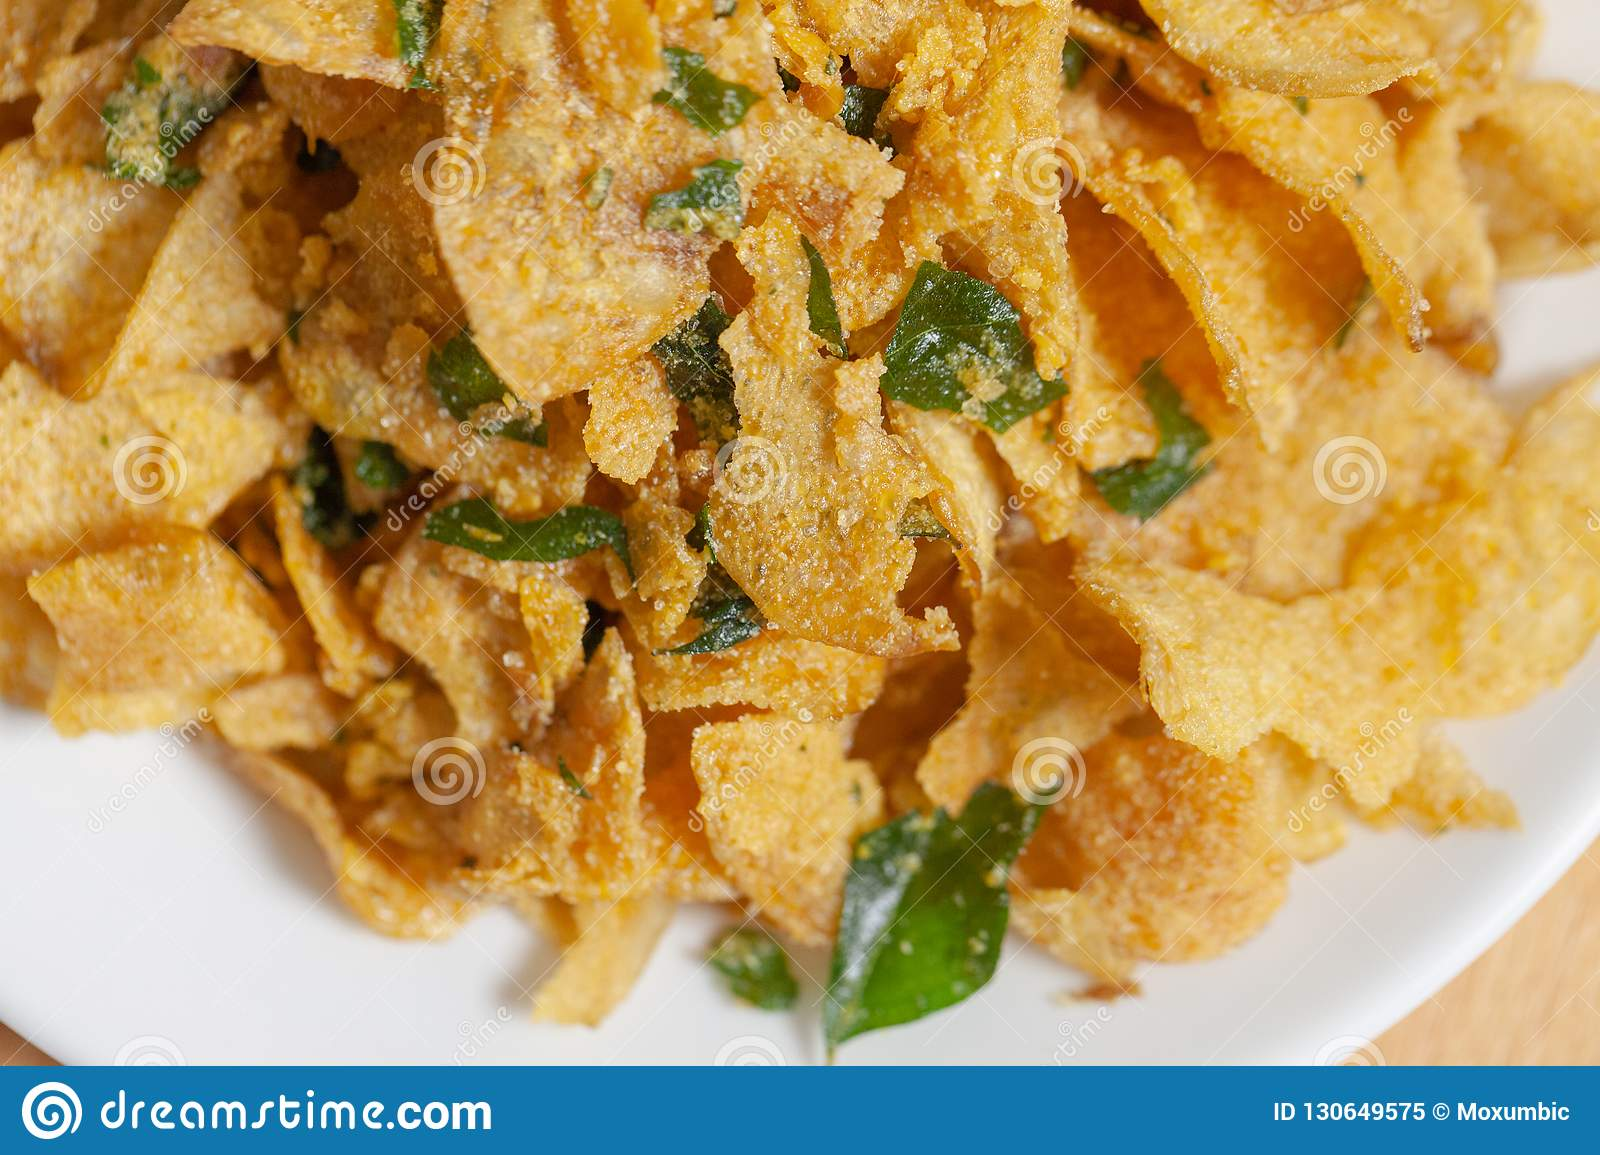 Salted Egg Potato Chips On Plate Stock Image Image Of Cucumber Fried 130649575